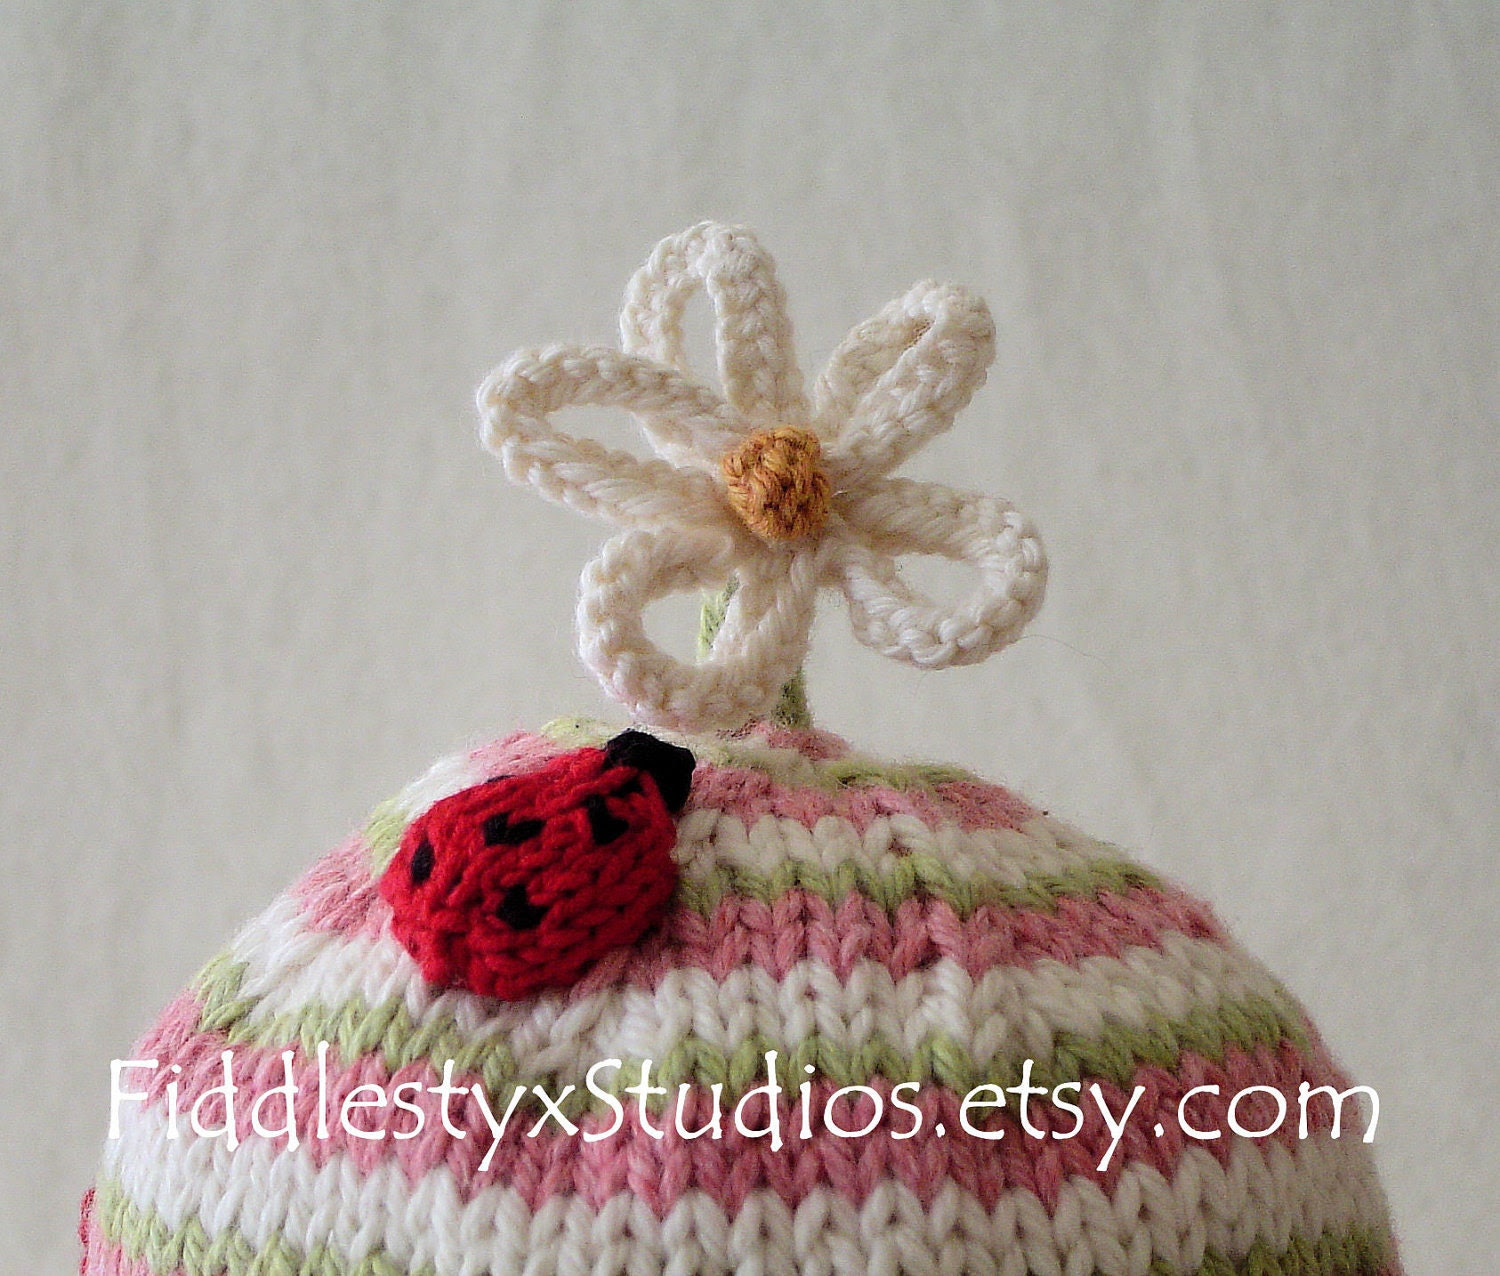 Baby Girl Hat Pink Ladybug Cap Newborn Photo Prop Eco Friendly Organic Cotton Hand Knitted Hat Children Clothing (custom sizes available)